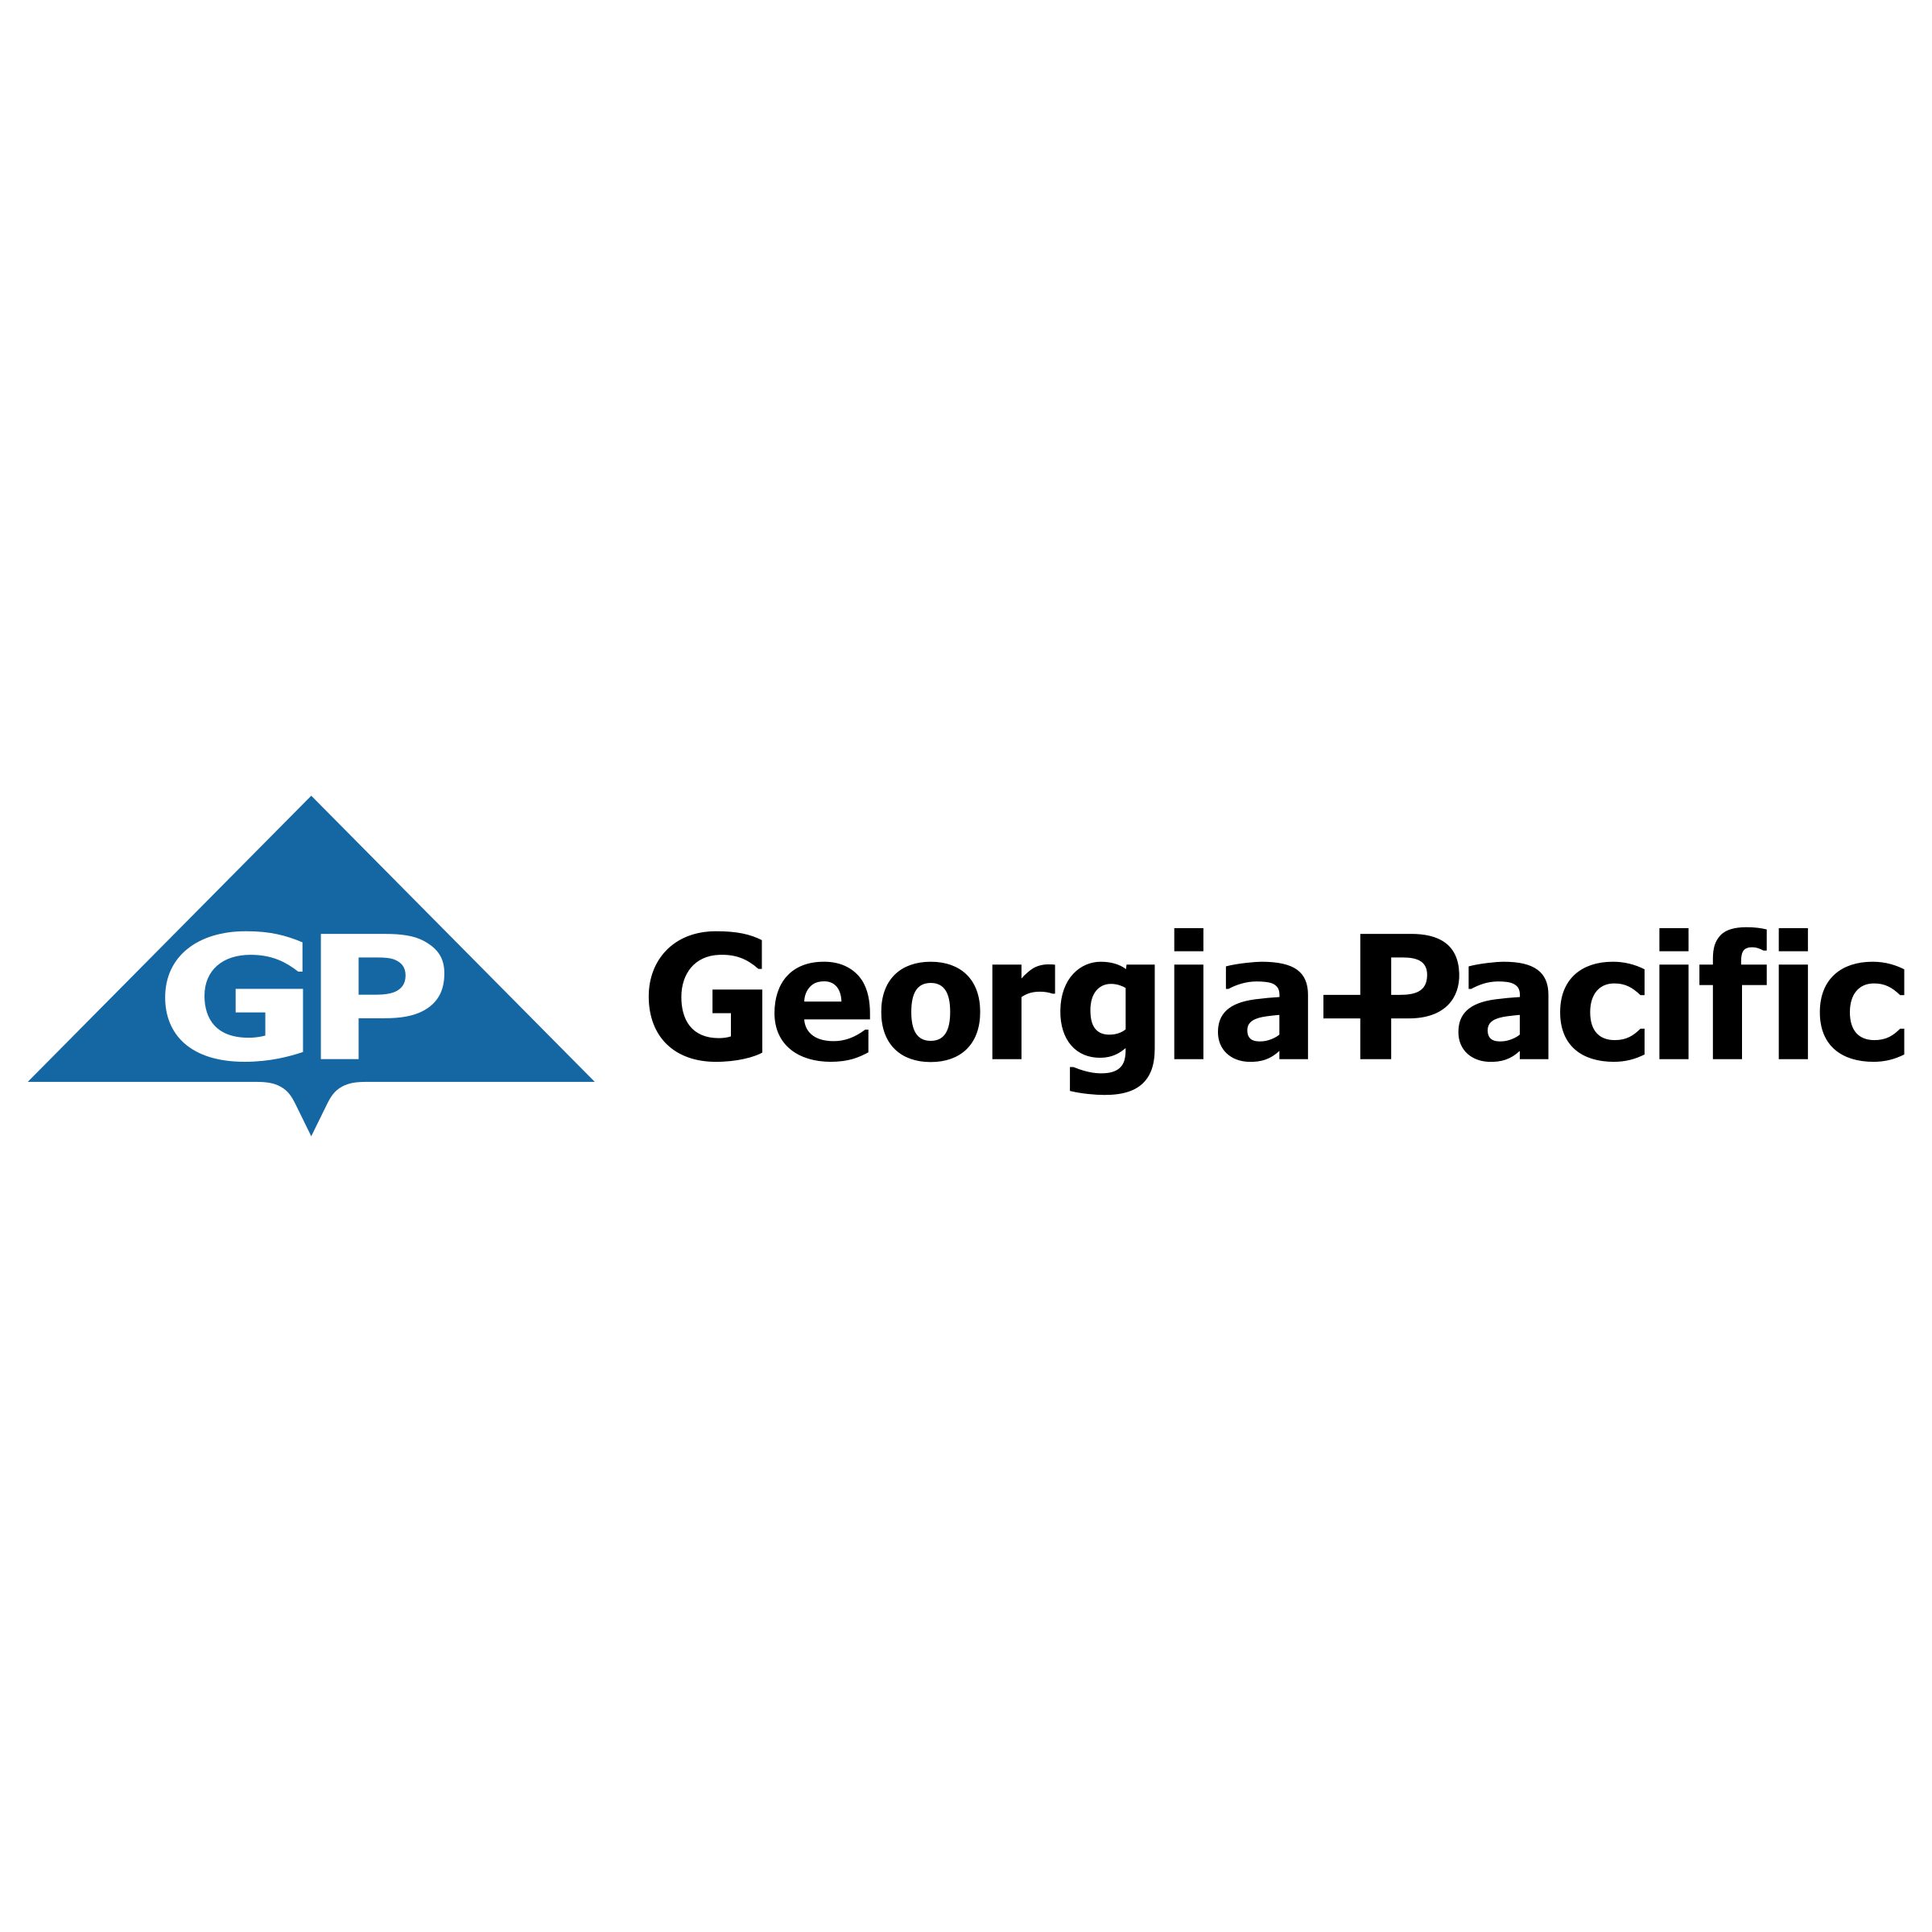 Georgia Pacific Logo PNG Transparent & SVG Vector.